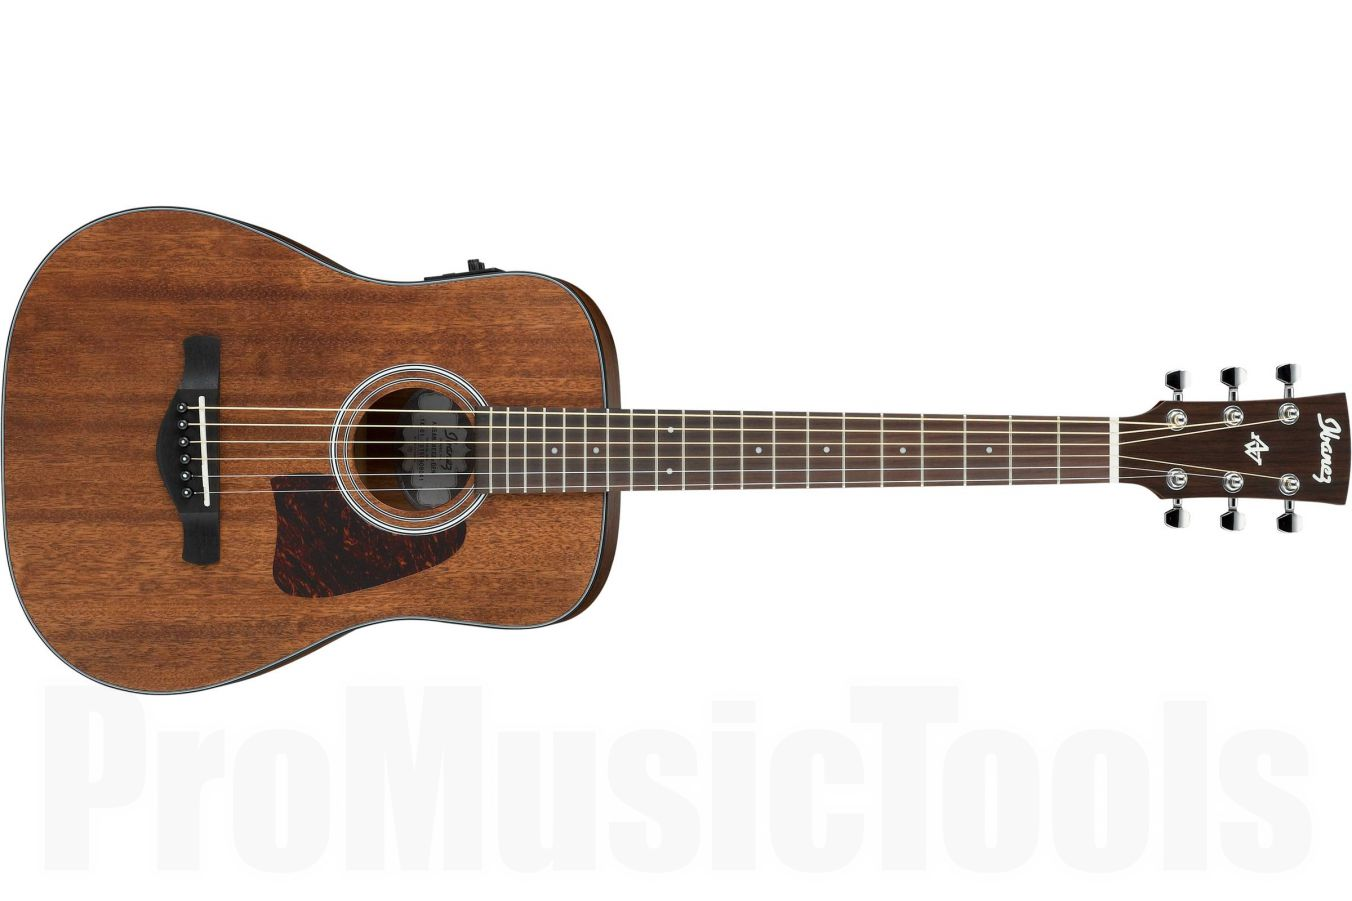 Ibanez AW54MINIGB OPN - Open Pore Natural - ¾ Acoustic Guitar - demo without bag